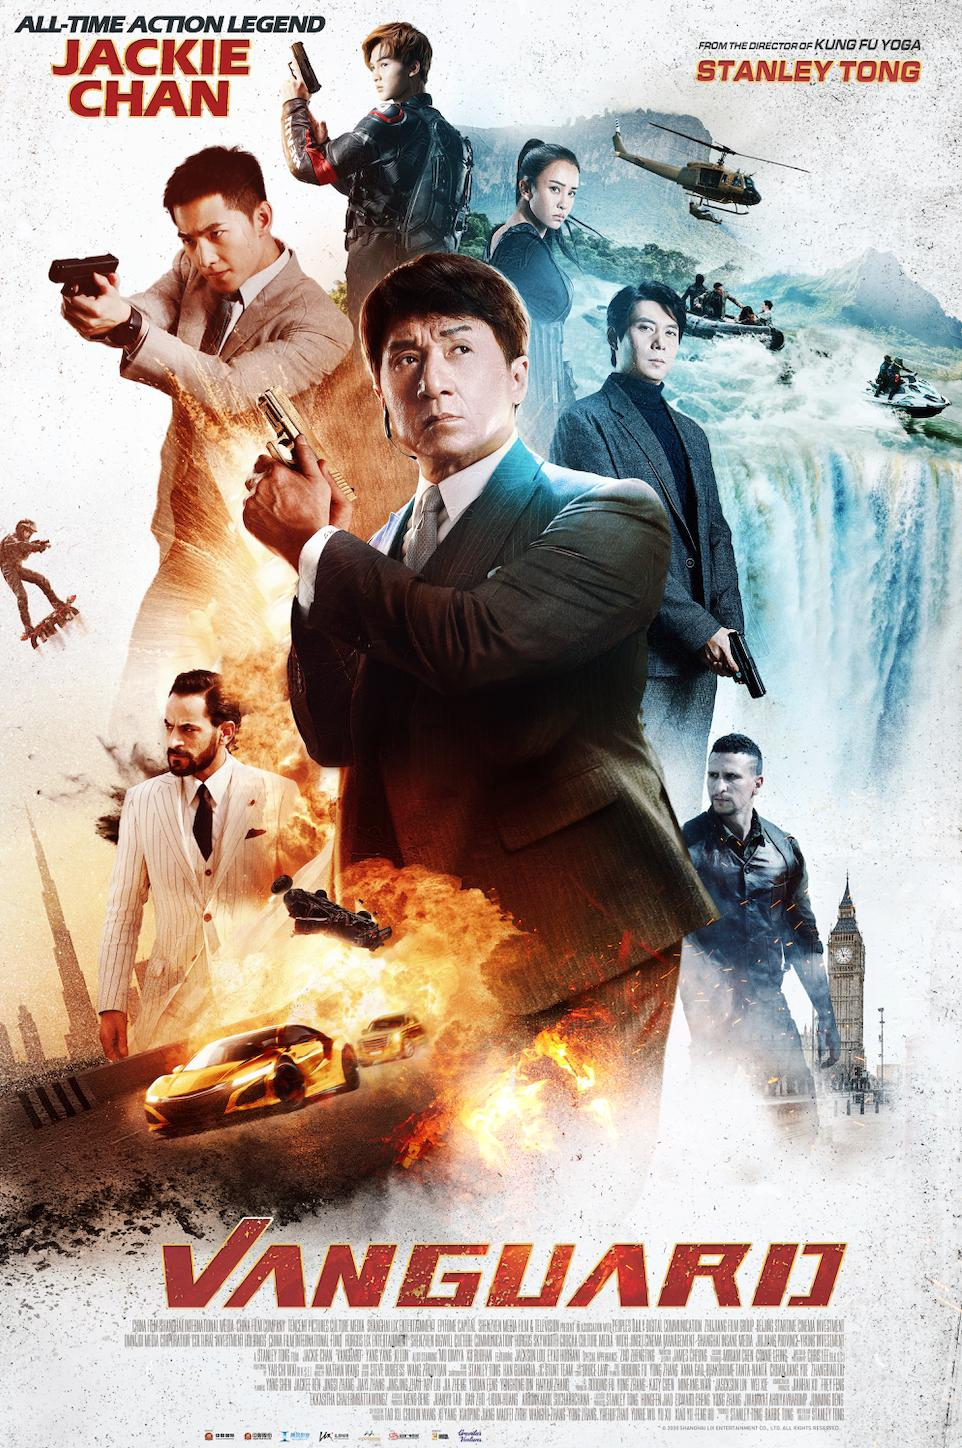 Vanguard (2021) Hindi Dubbed Movie HDRip 720p AAC